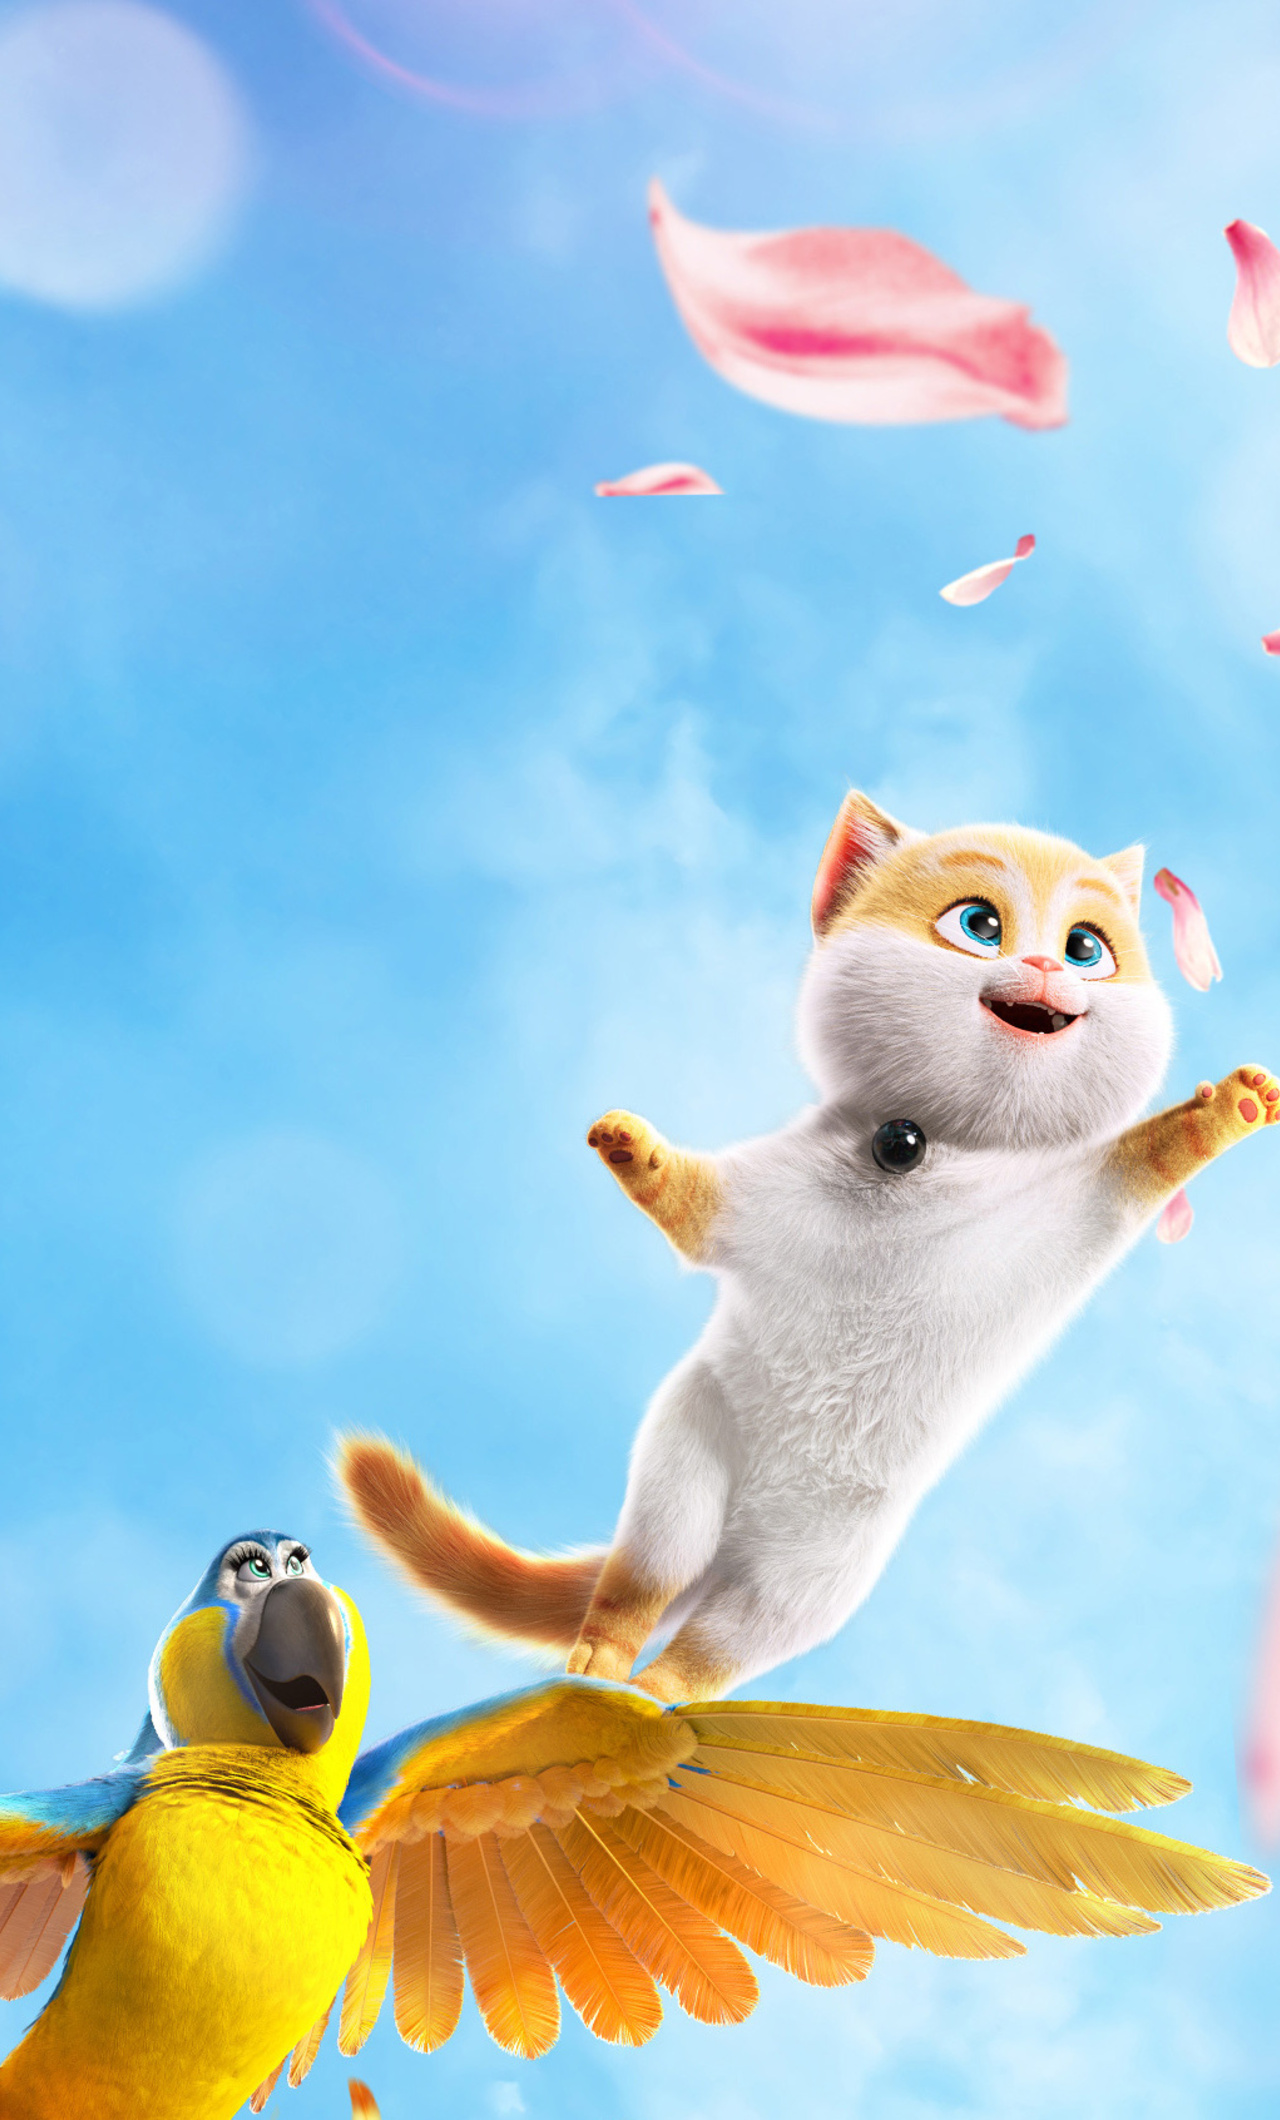 cats-and-paachtopia-animated-movie-2y.jpg